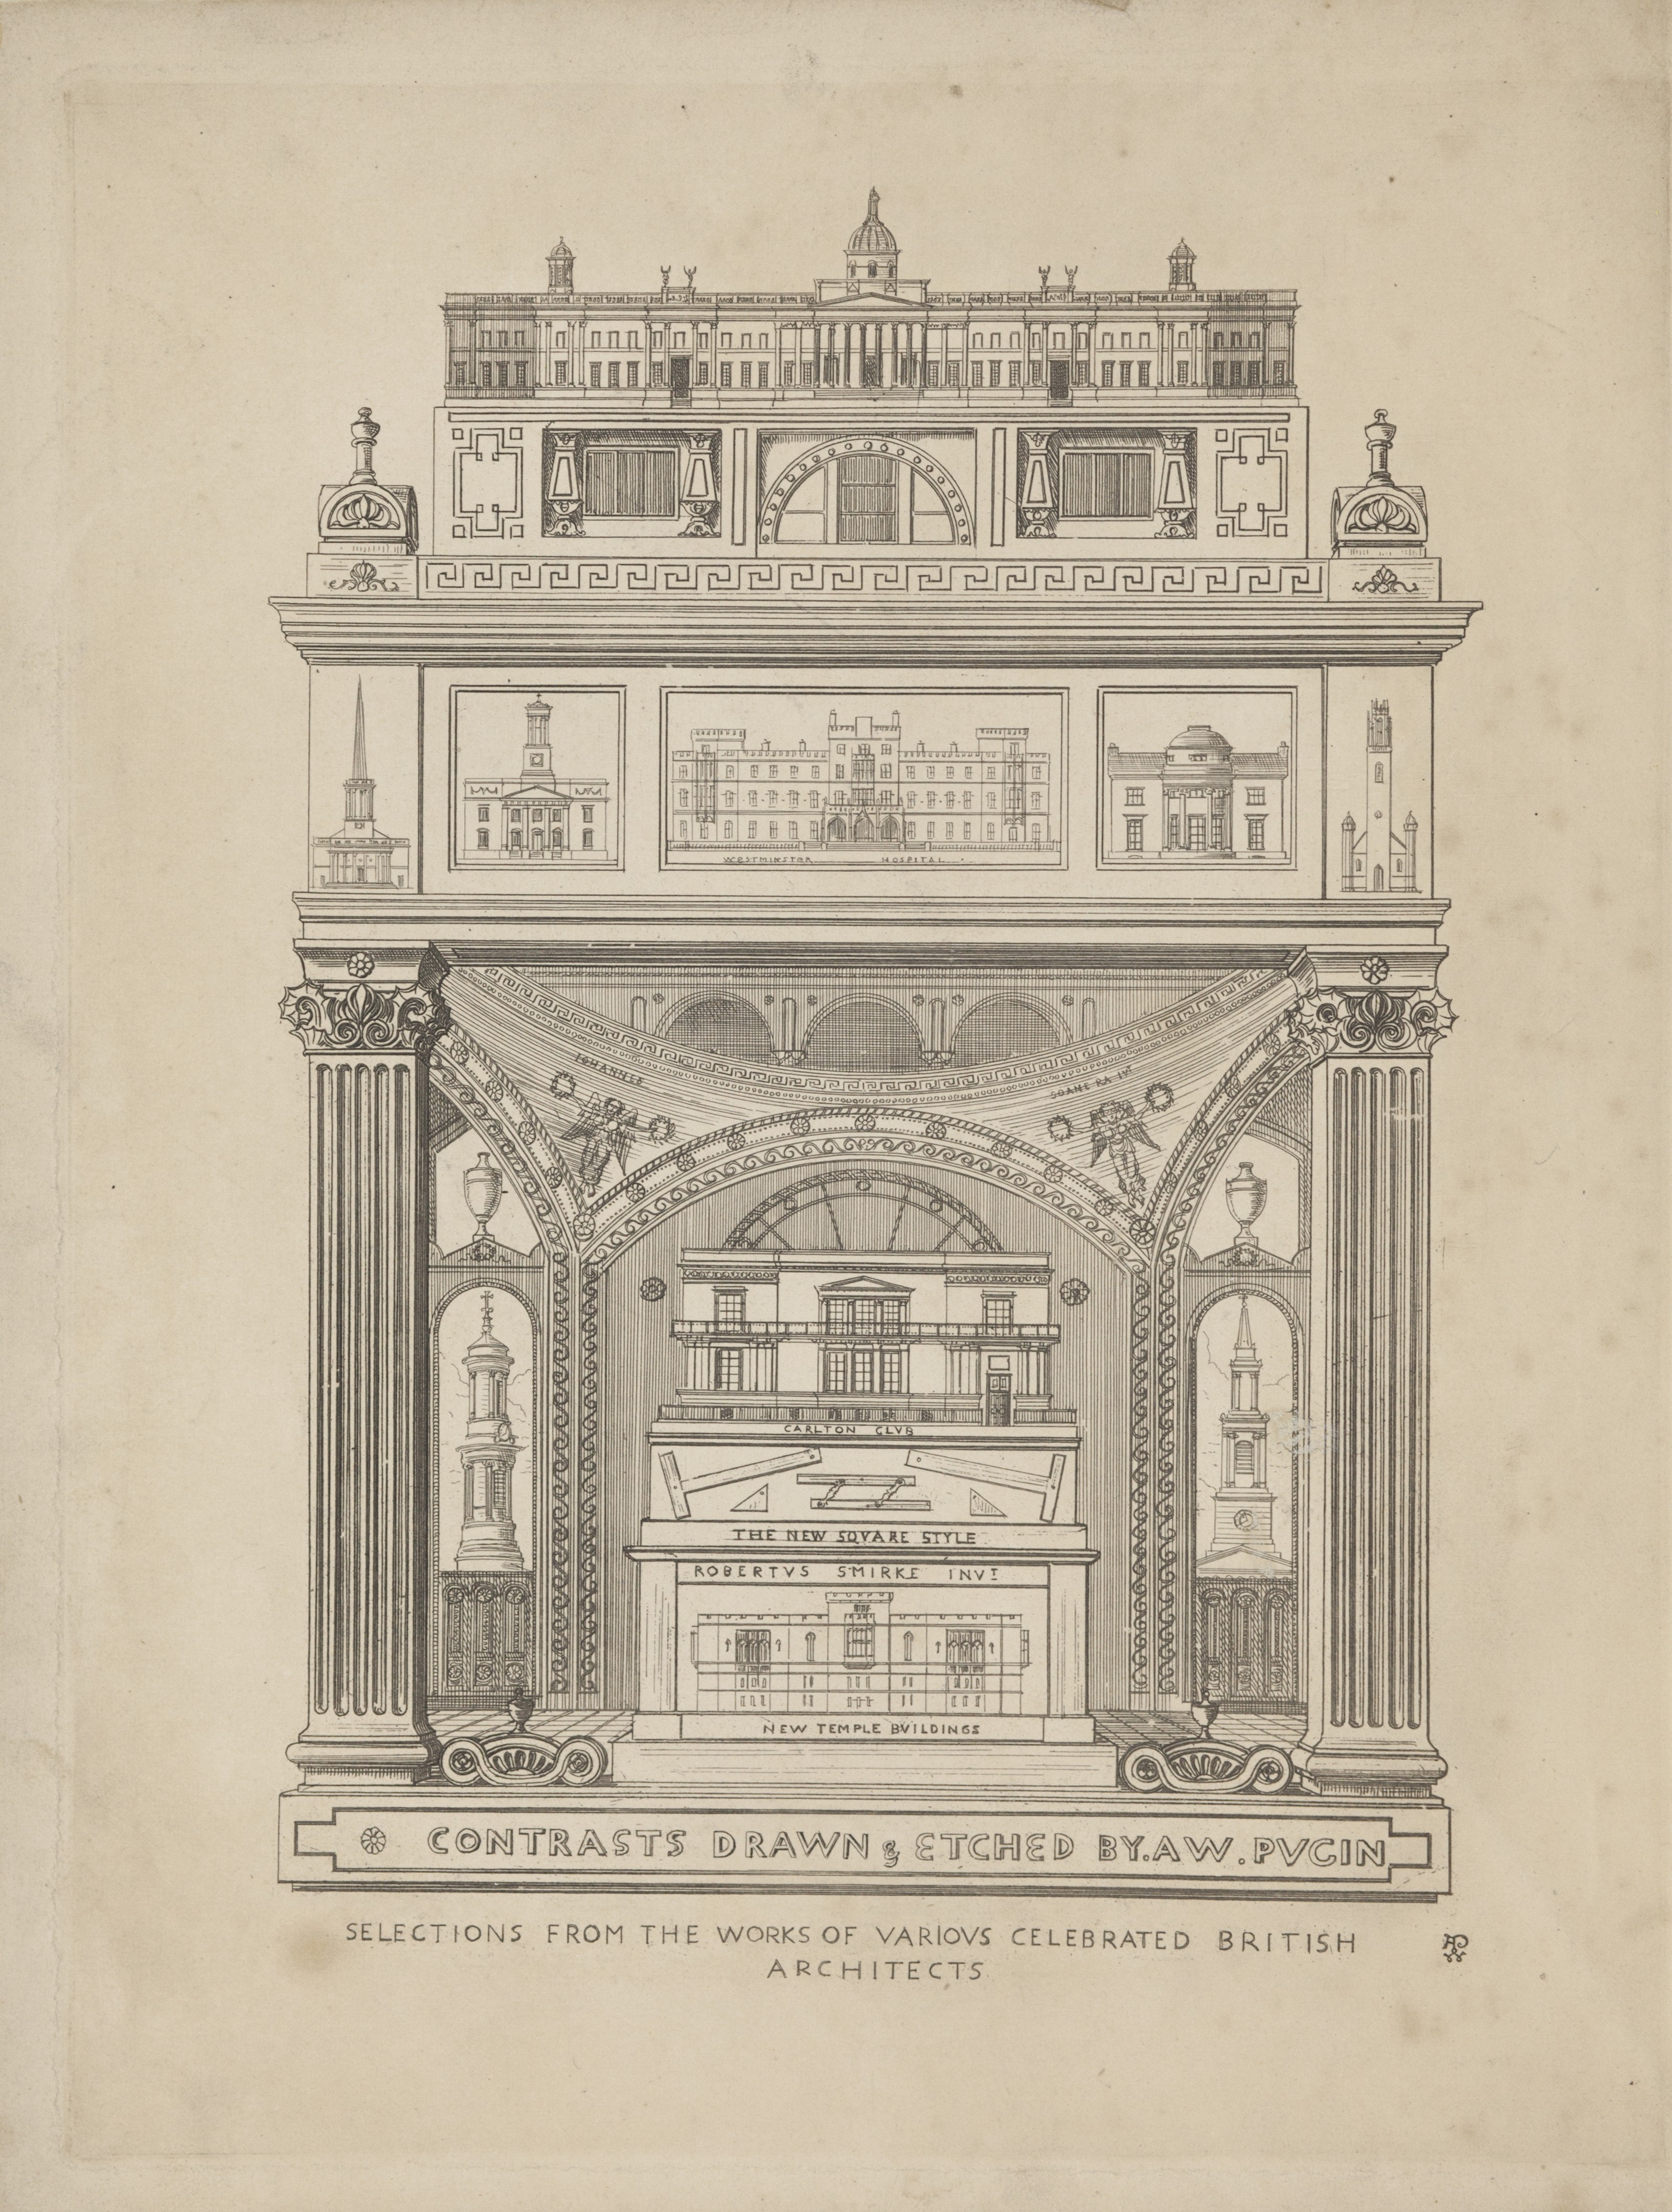 Contrasts, or a parallel between the noble edifices of the XIVth and XVth centuries, and similar buildings of the present day / by A. Welby Pugin ; contrasts drawn & etched by A. W. Pugin. — London : Printed by James Moyes, Castle Street, Leicester Square, 1836